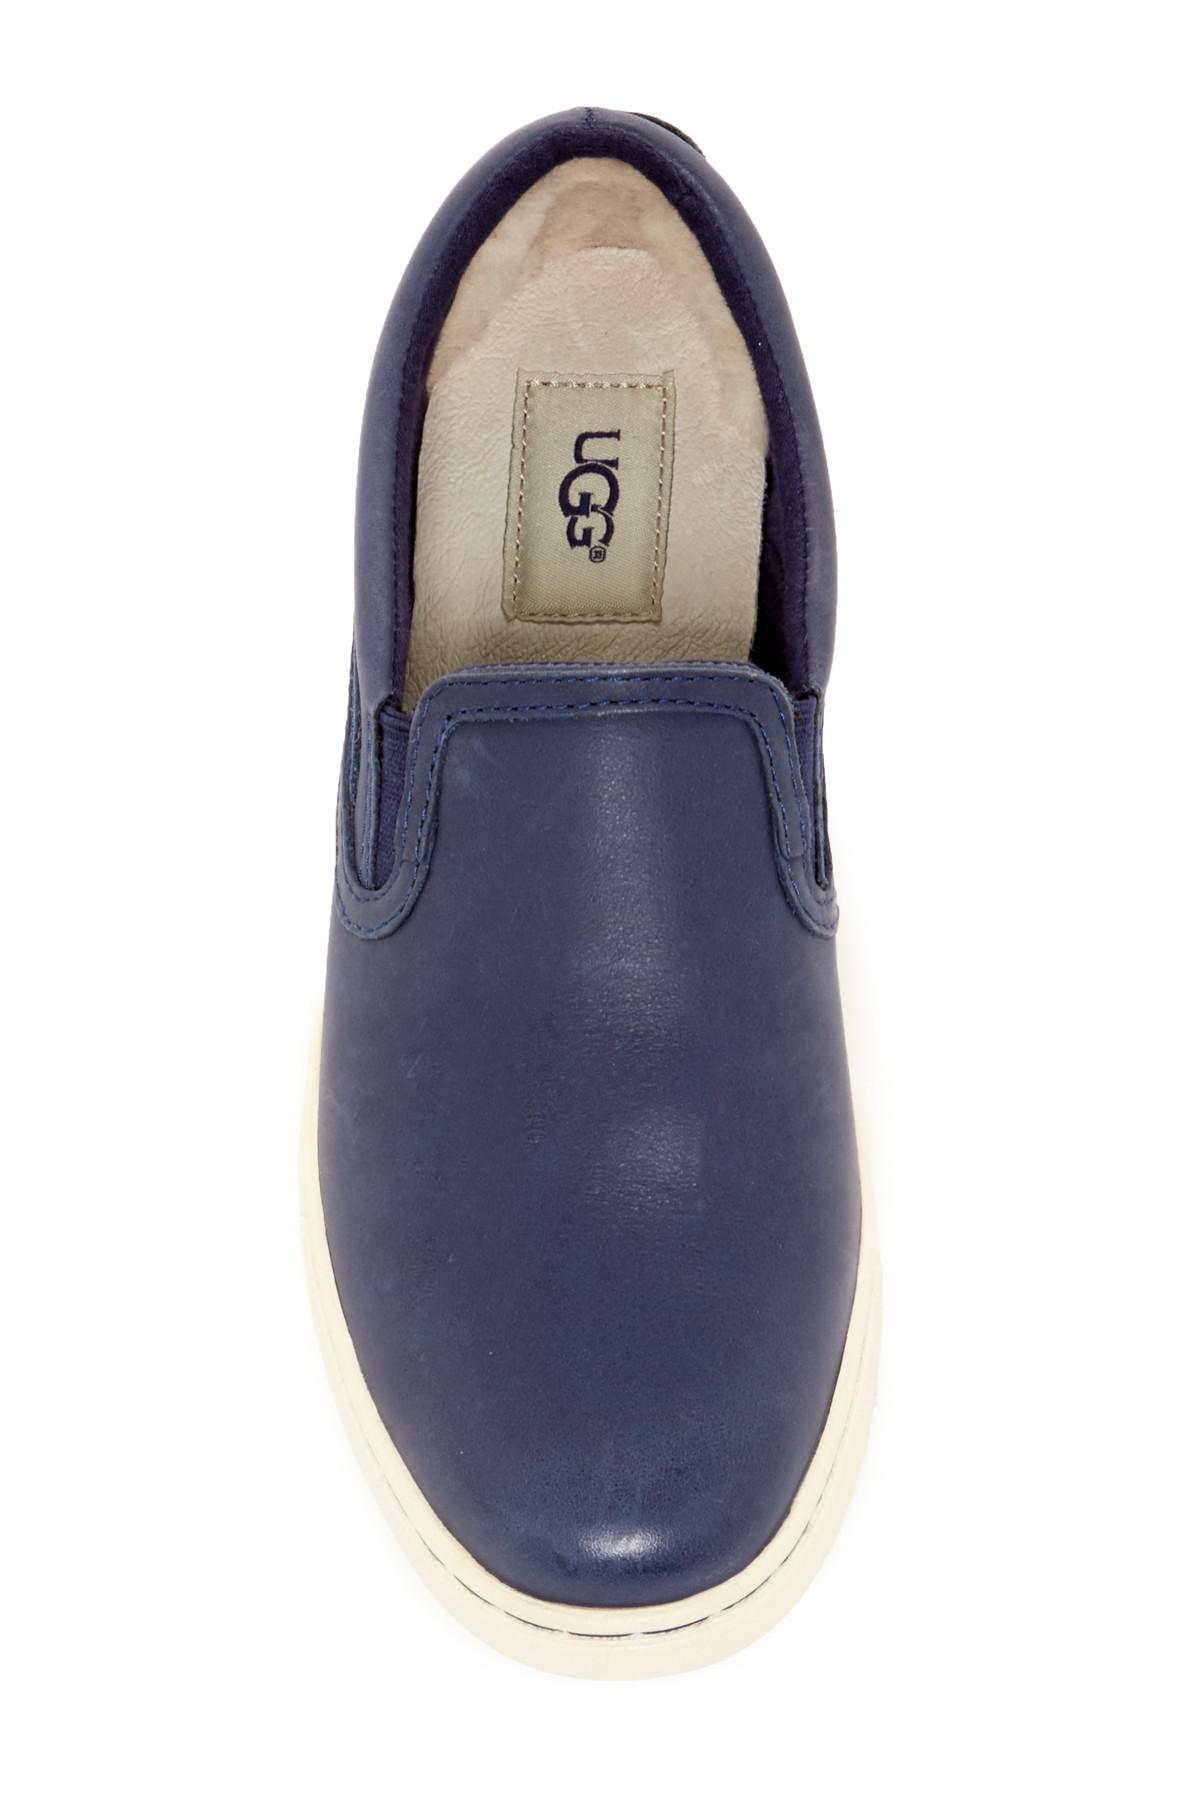 f7404166b98 Lyst - UGG Fierce Leather Uggpure(tm) Lined Slip-on Sneaker in Blue ...